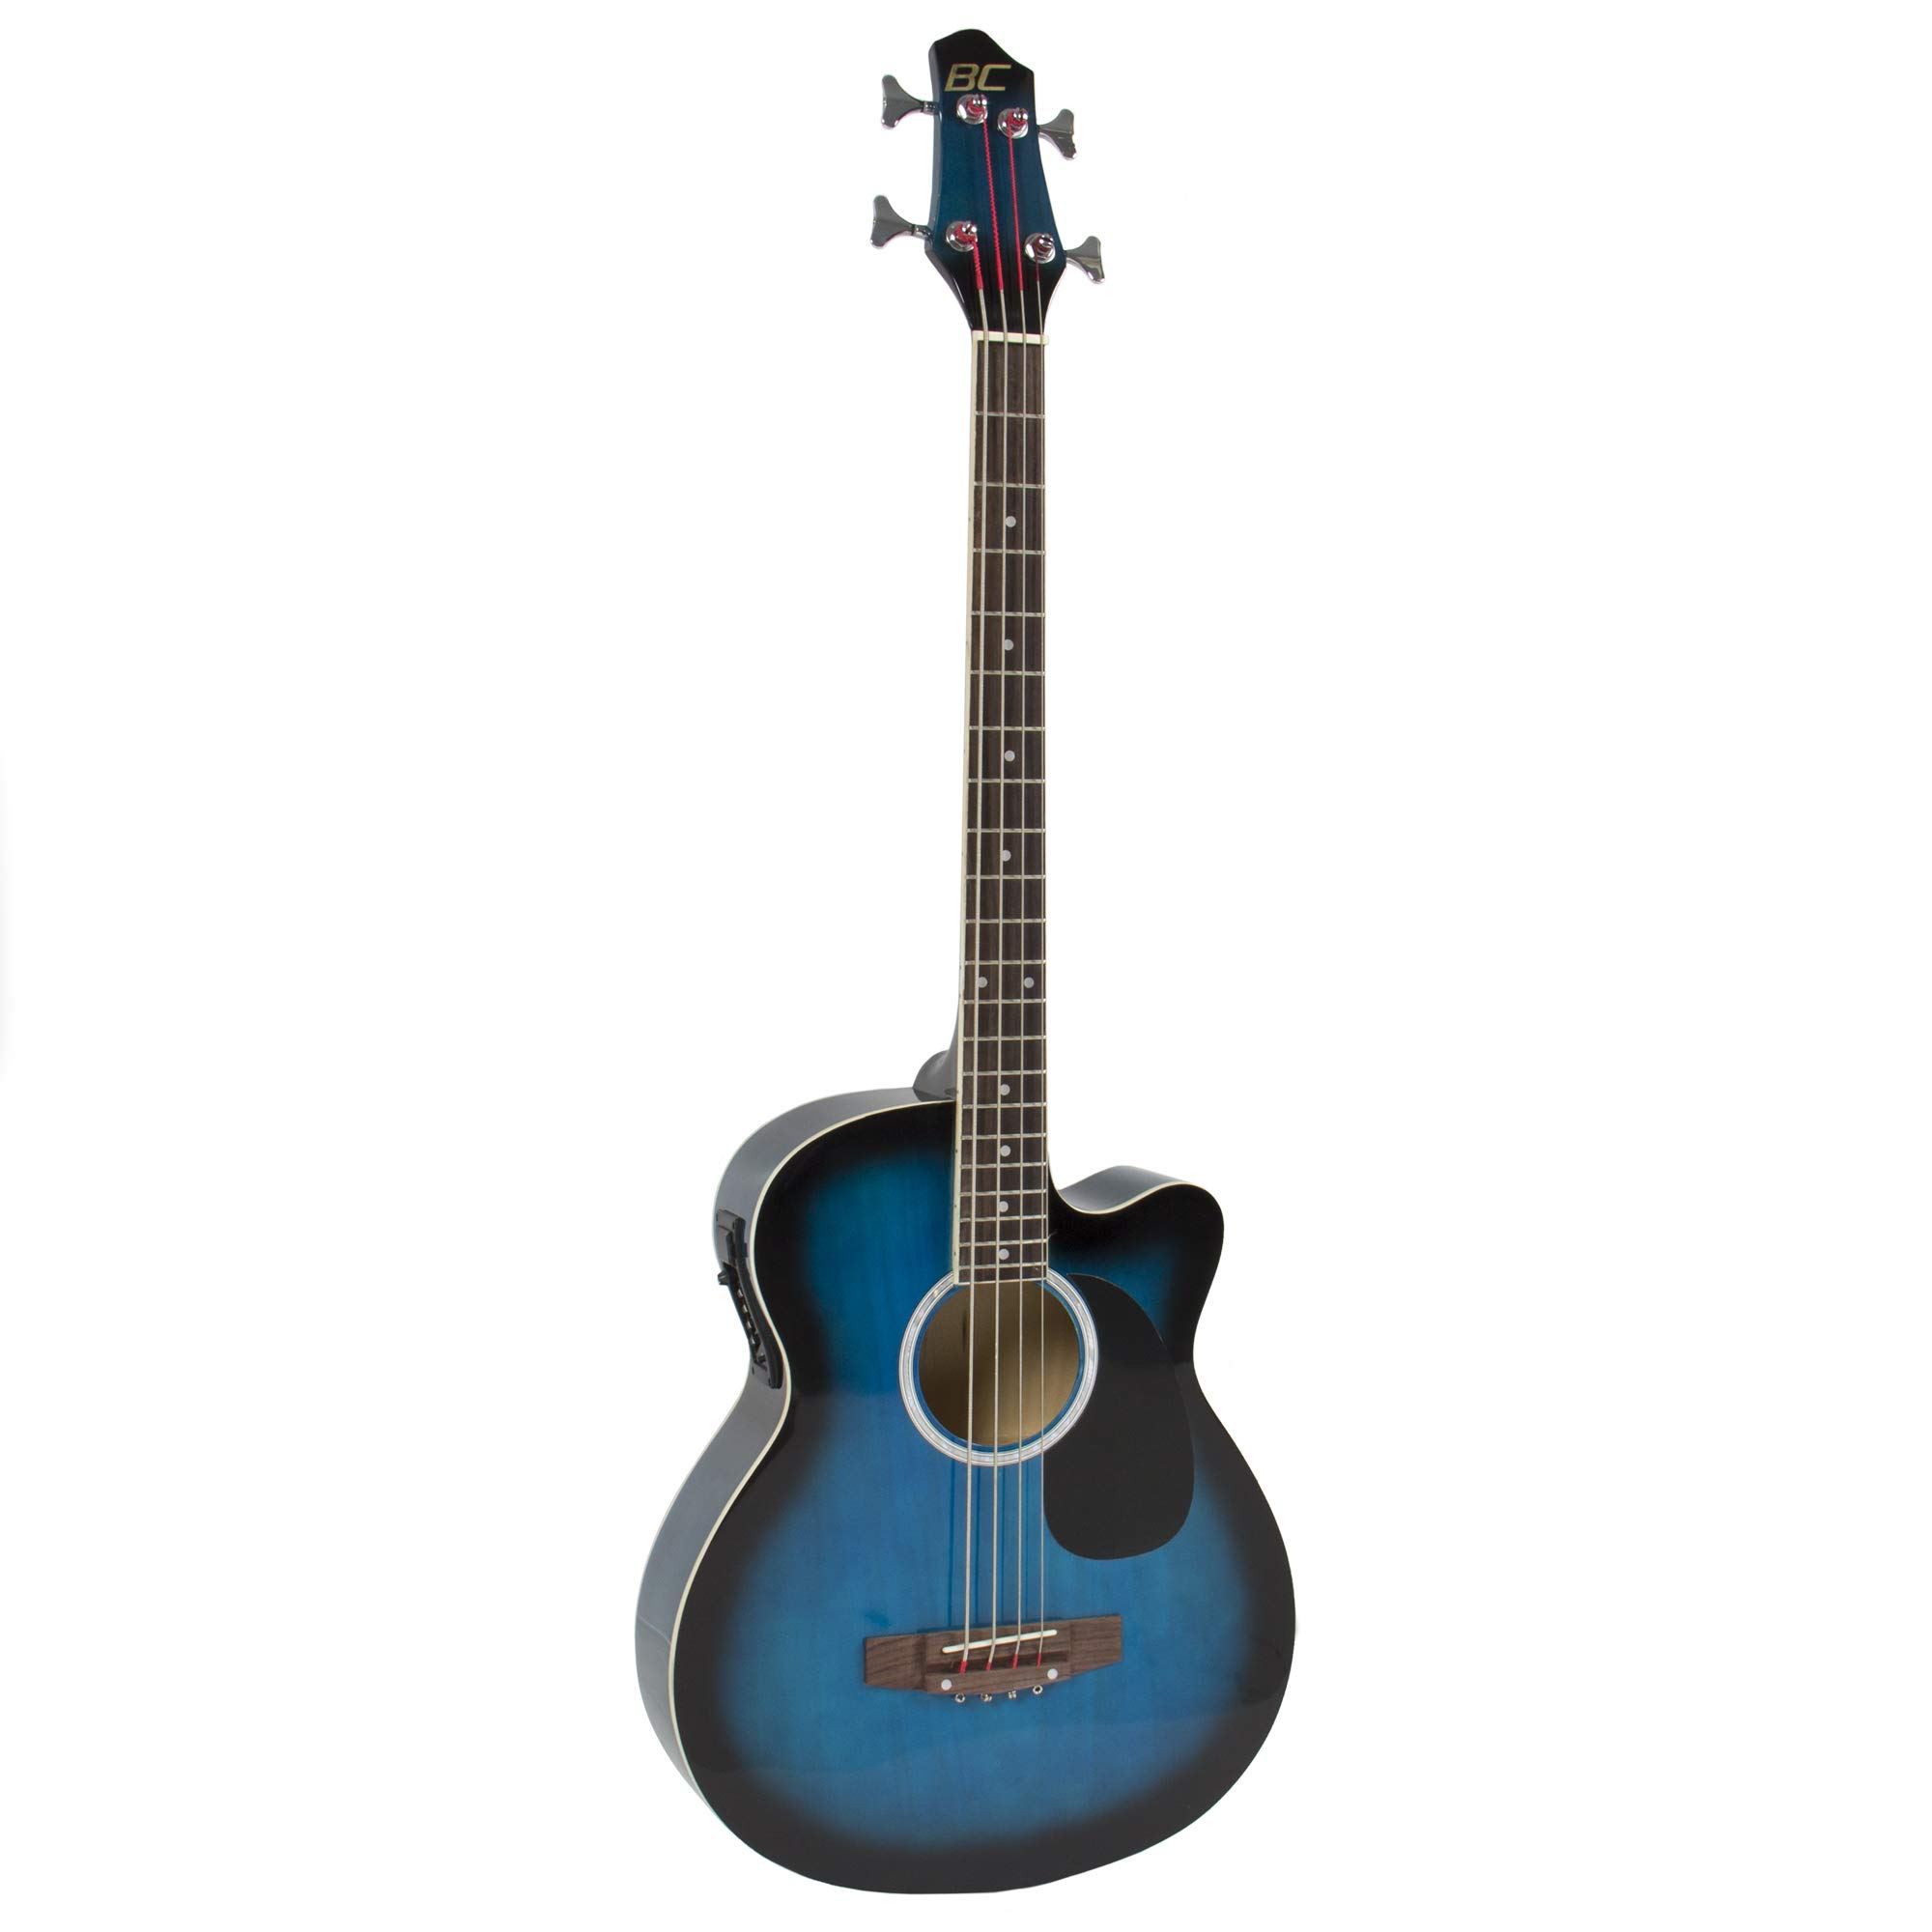 Electric Acoustic Bass Guitar Blue Solid Wood Construction With Equalizer